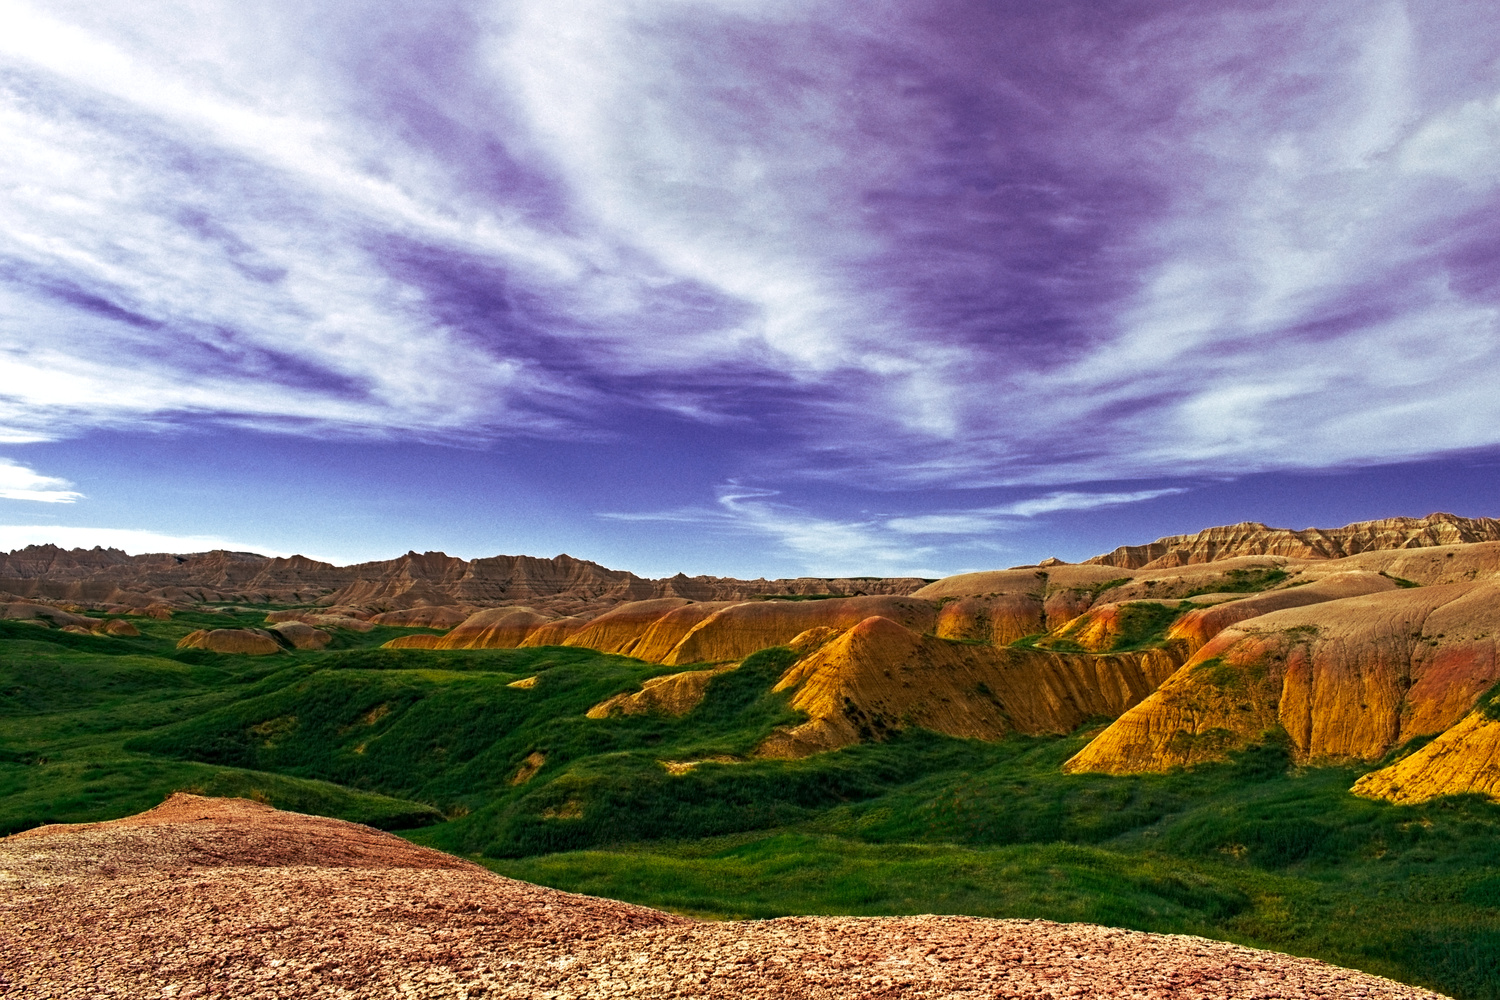 The Yellow Mounds of the Badlands by Tong Thao